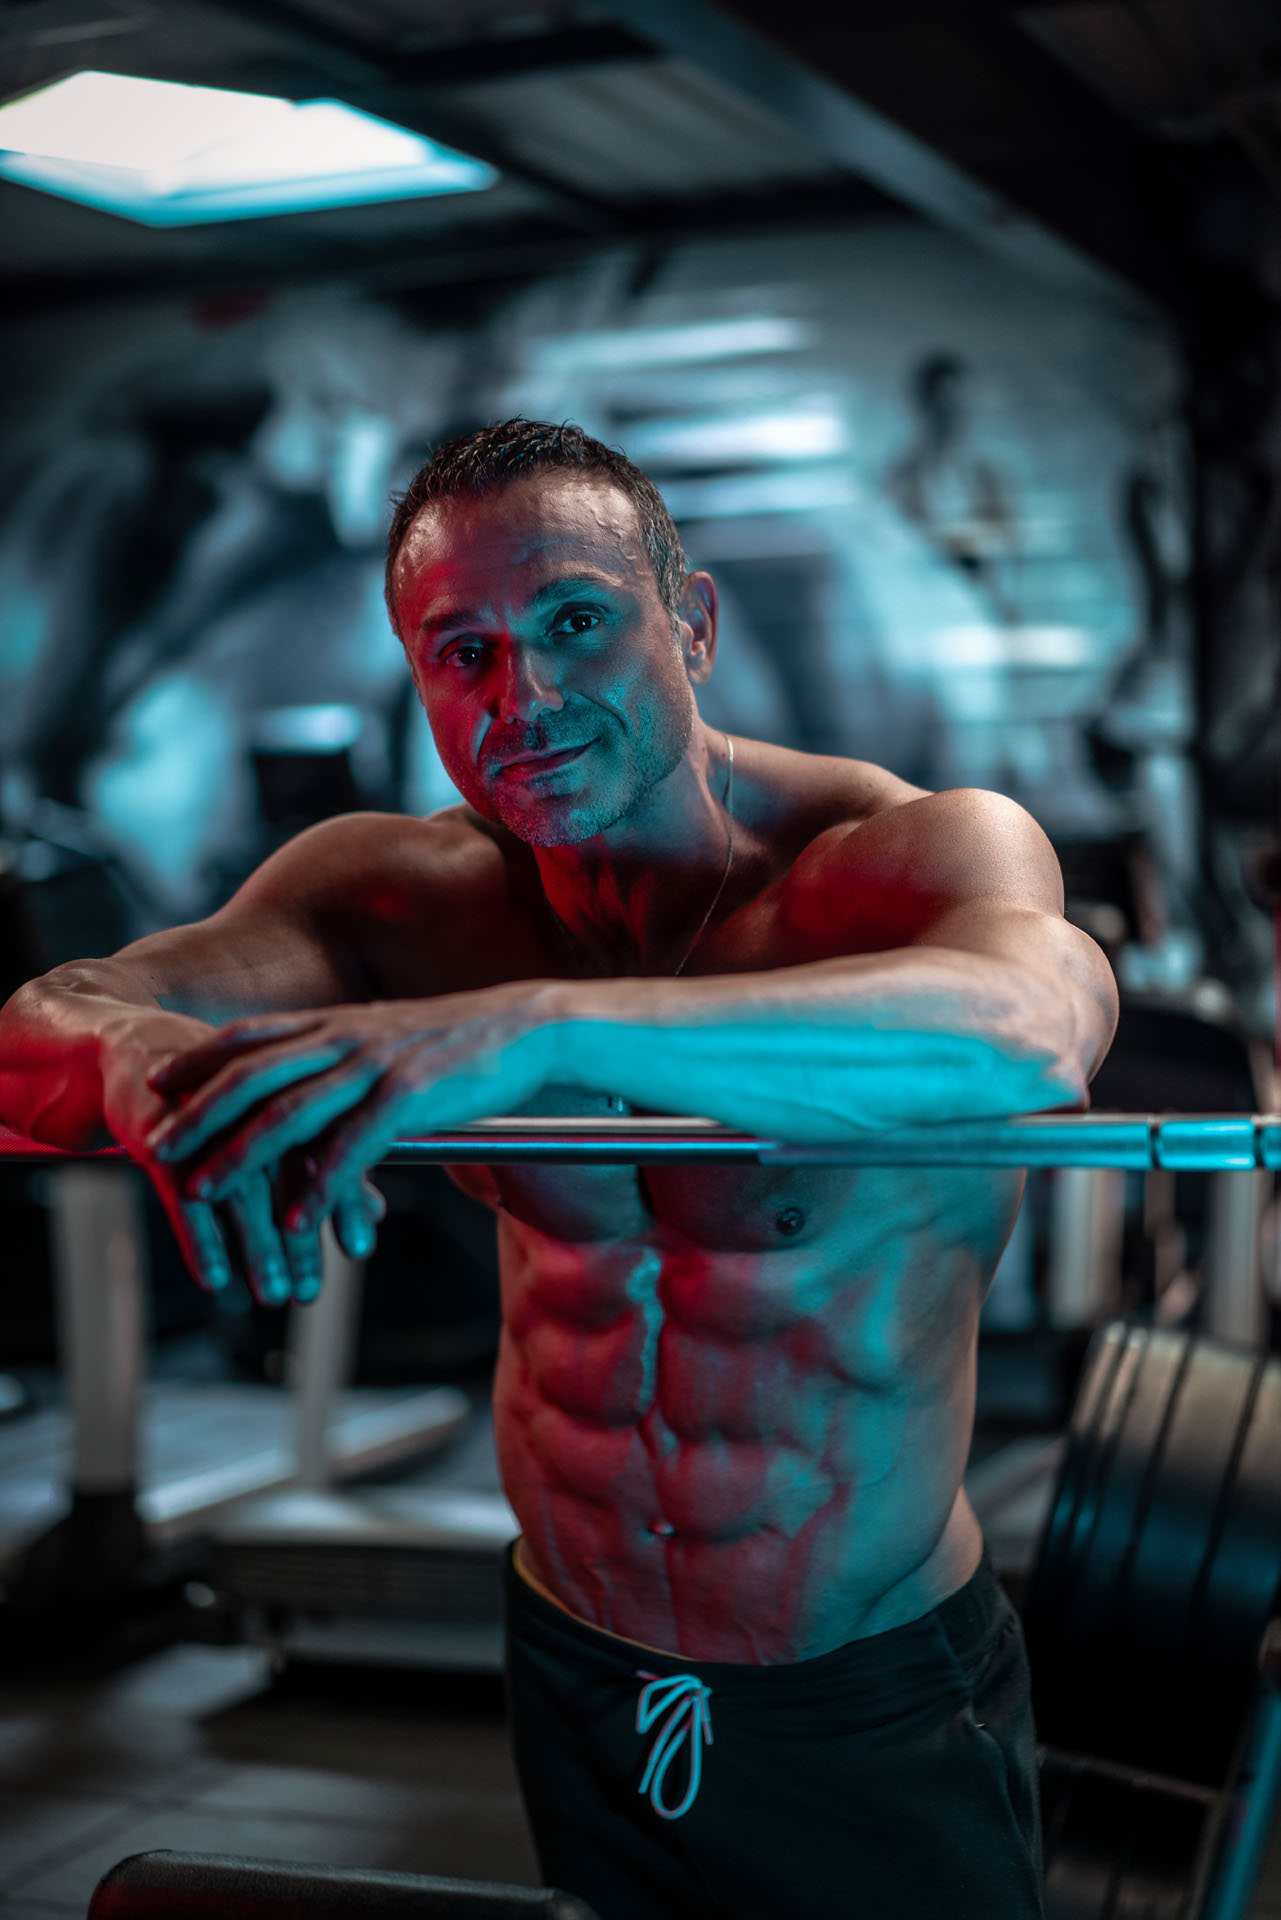 2020-03-15 - Enzo - Muscle Factory - 01708 - 1920px